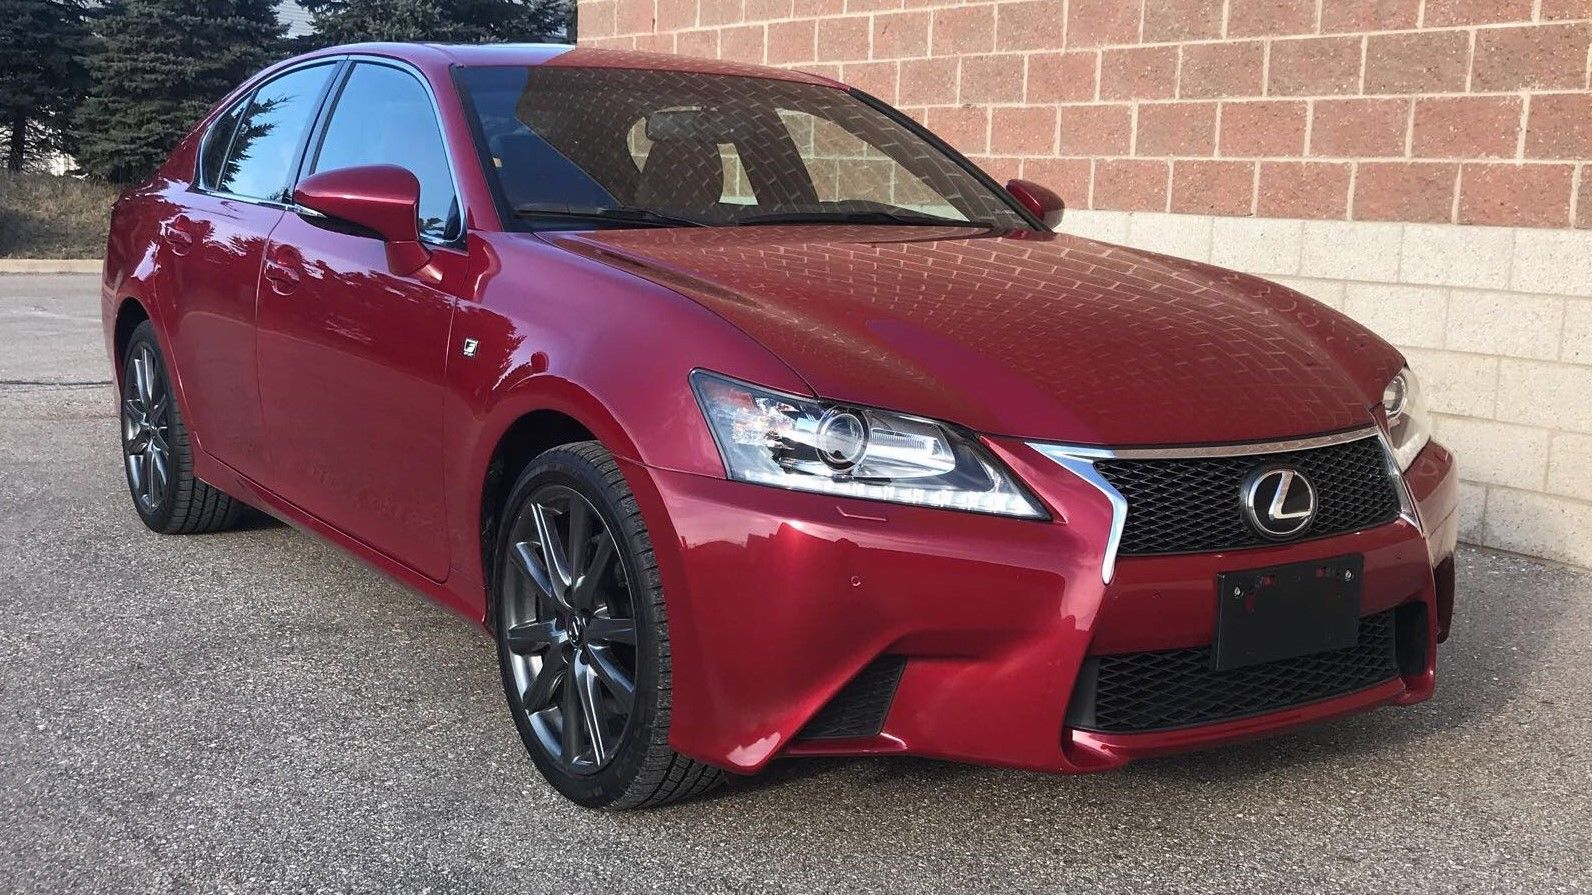 Awesome 2014 Lexus GS 350 F SPORT AWD 2014 LEXUS GS350 F SPORT AWD 2018 2019